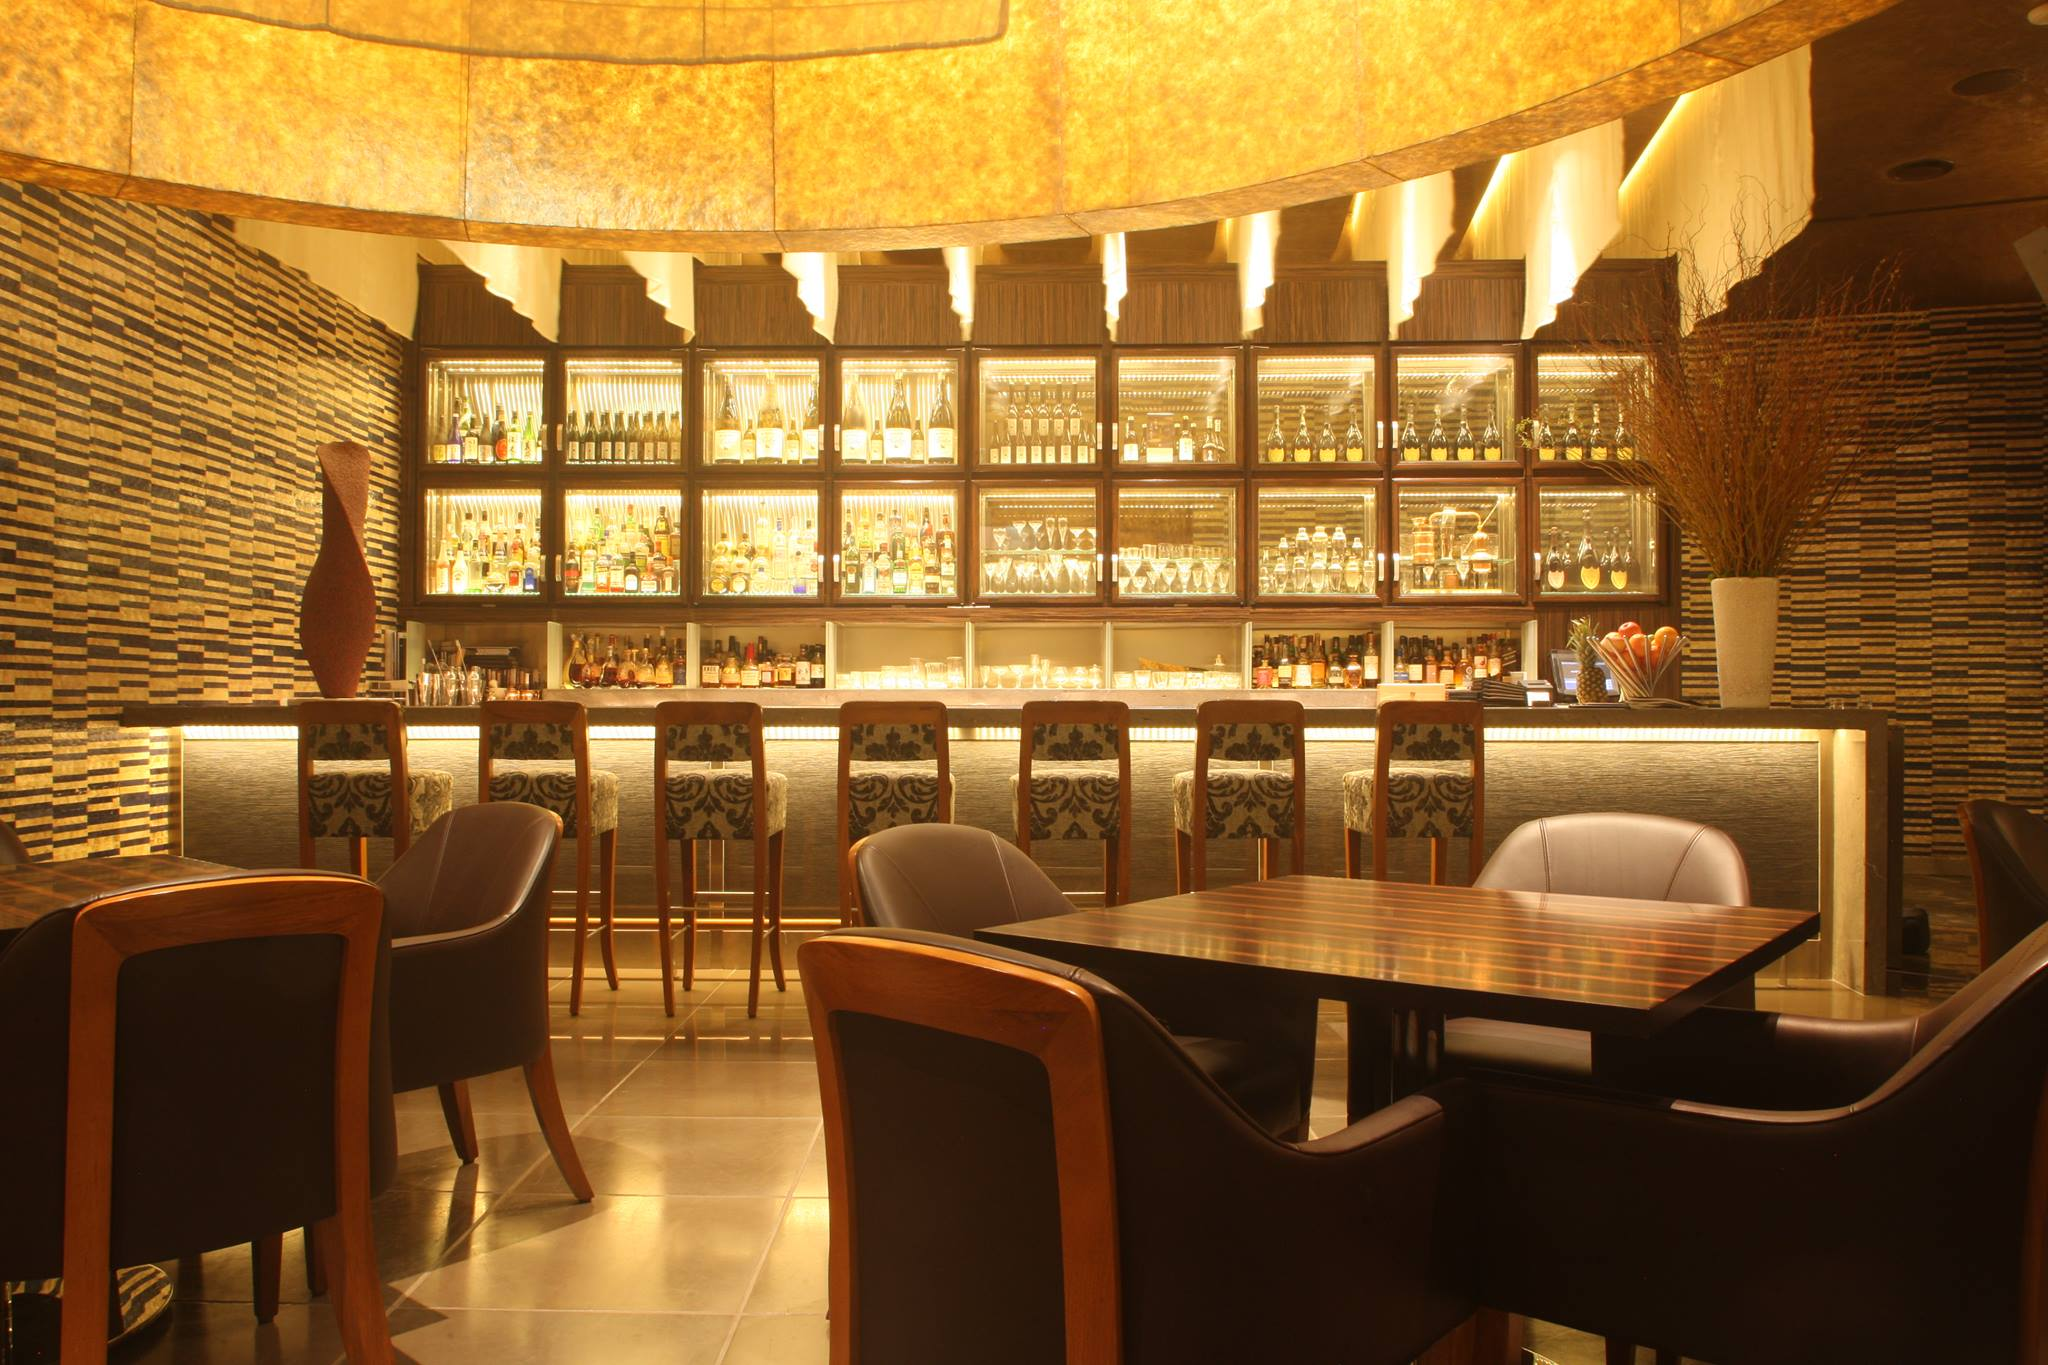 The Bar at Waku Ghin best wine bars in Singapore for vino lovers